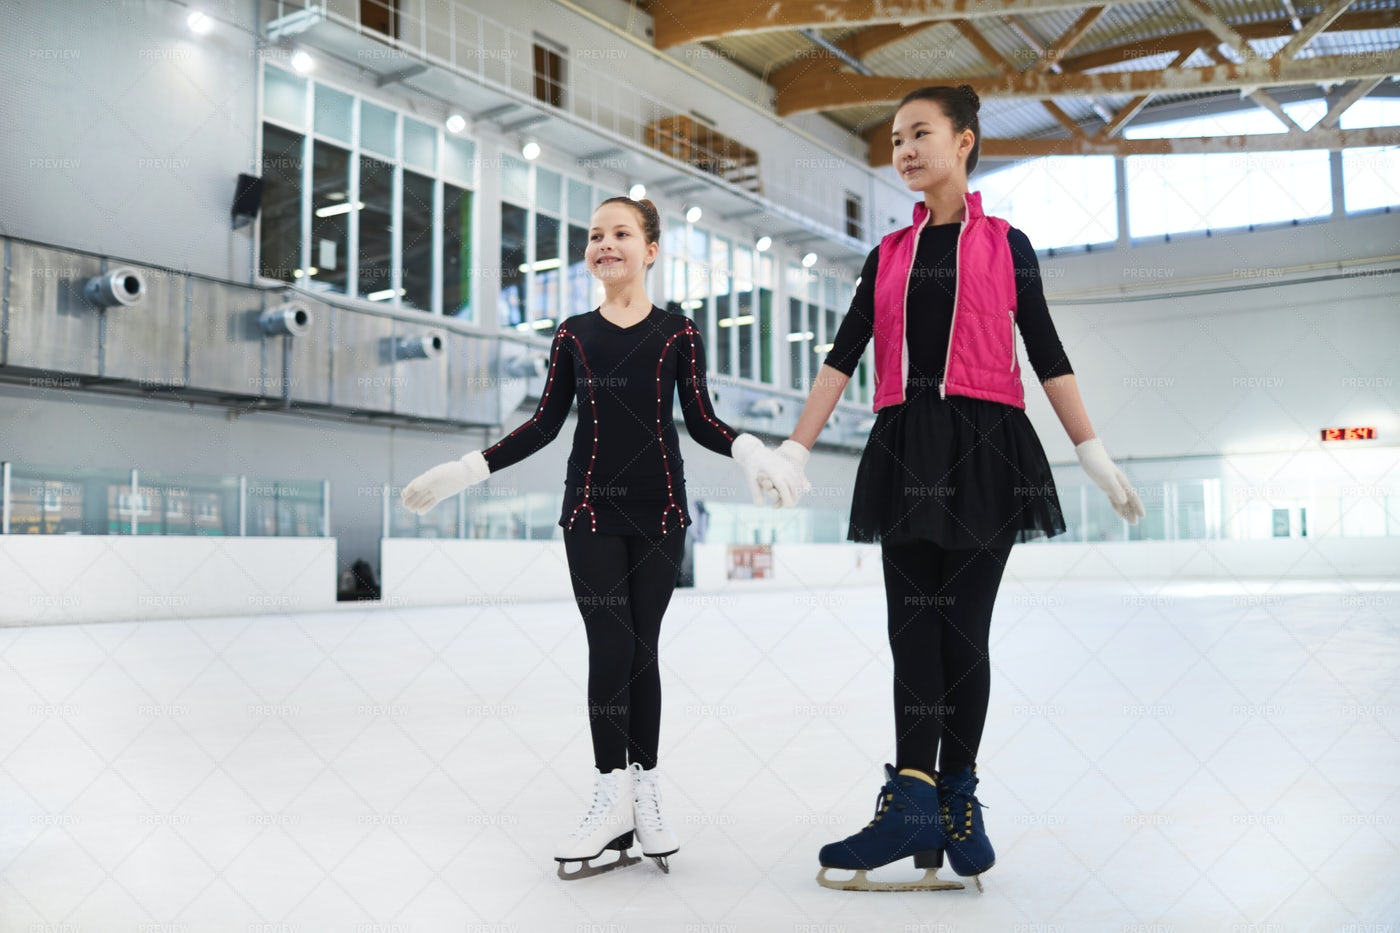 Two Figure Skaters Posing On Ice: Stock Photos